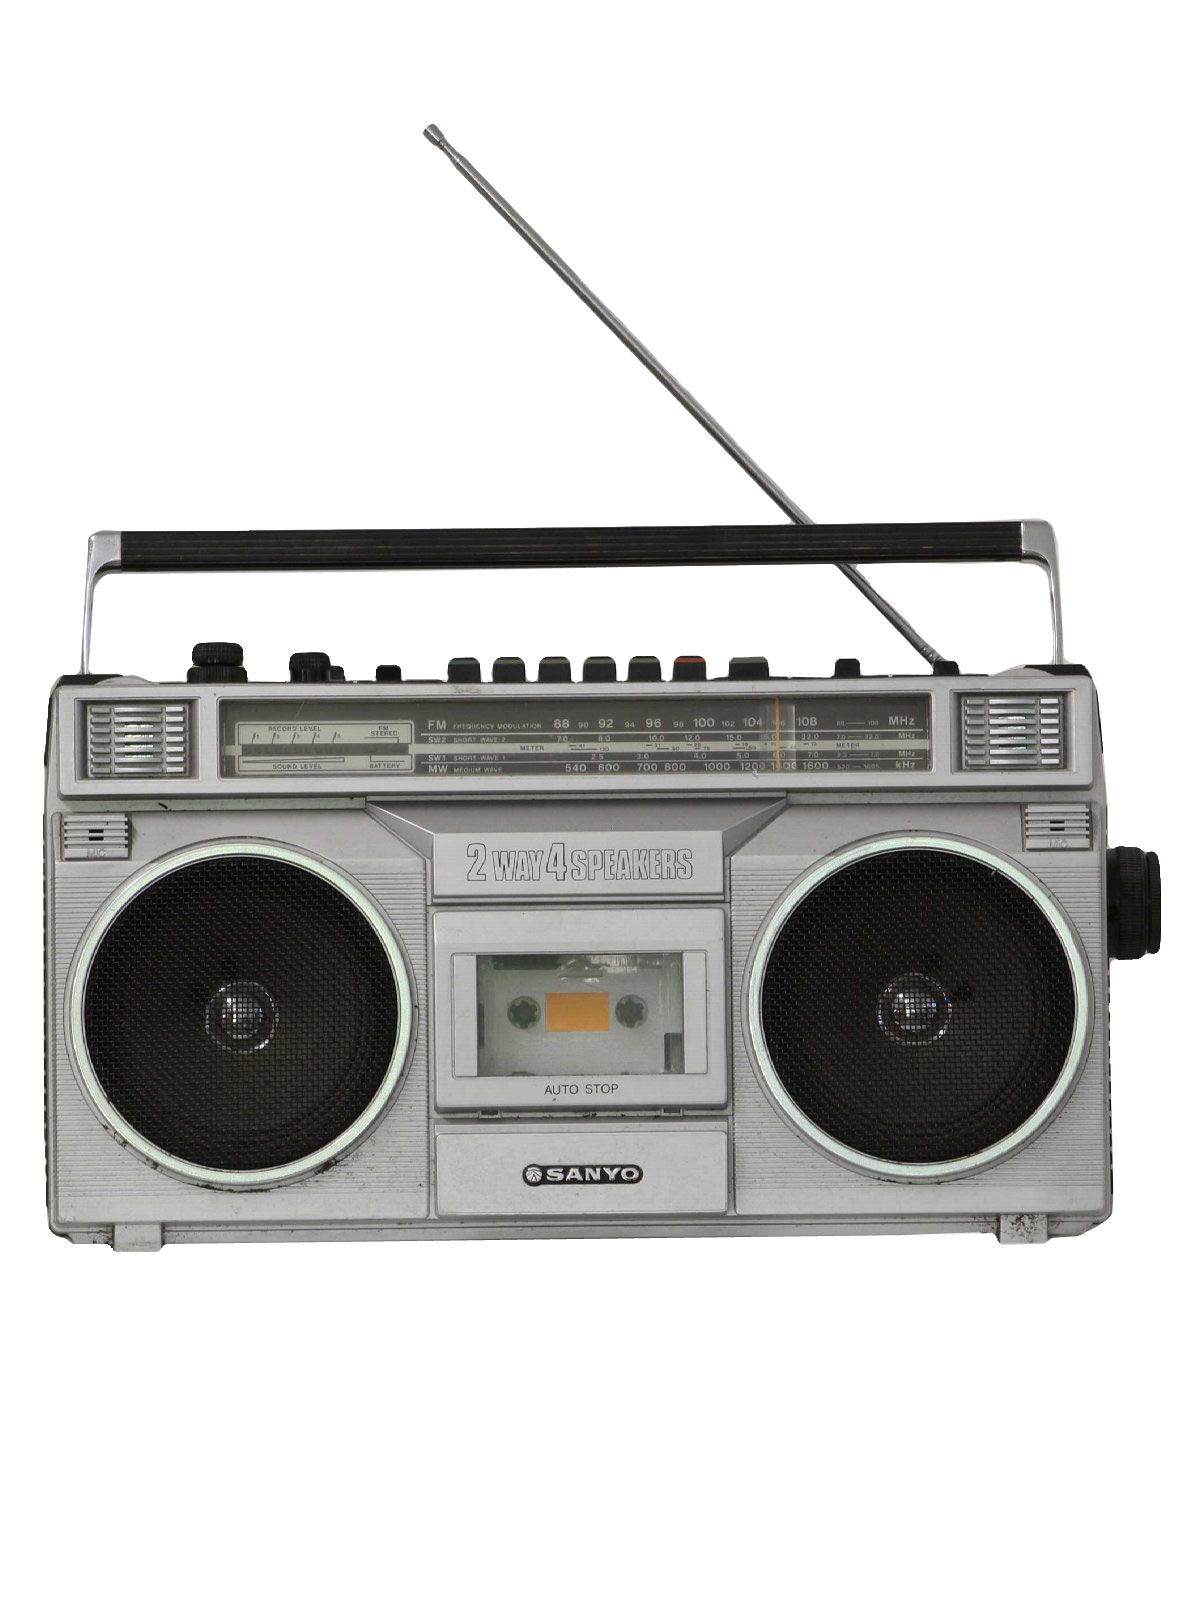 The Boombox Project by Lyle Owerko @Clic | Avenue80s NYC  |80s Boombox